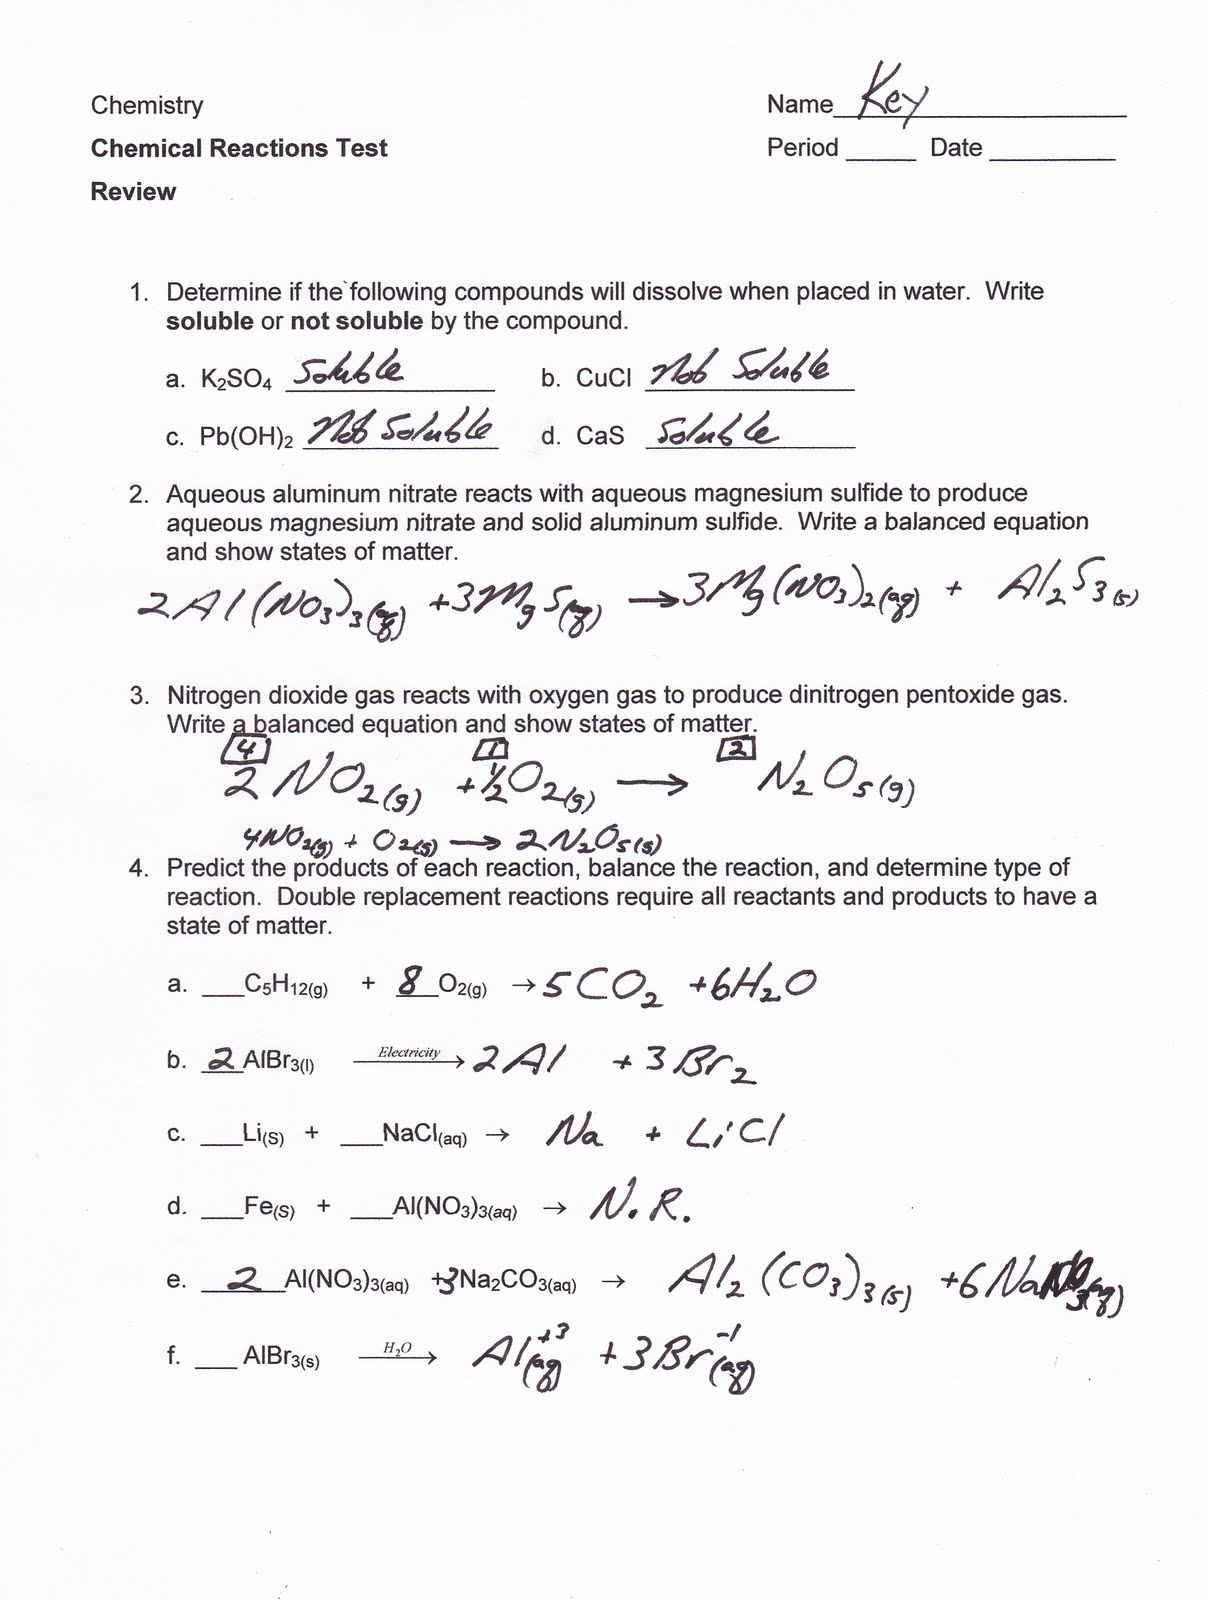 Worksheets Chemical Reactions Worksheet Answers mr brueckners chemistry class hhs 2011 12 chemical for those of you experiencing a little difficulty on the balancing reactions worksheet i have some advice possible sticki